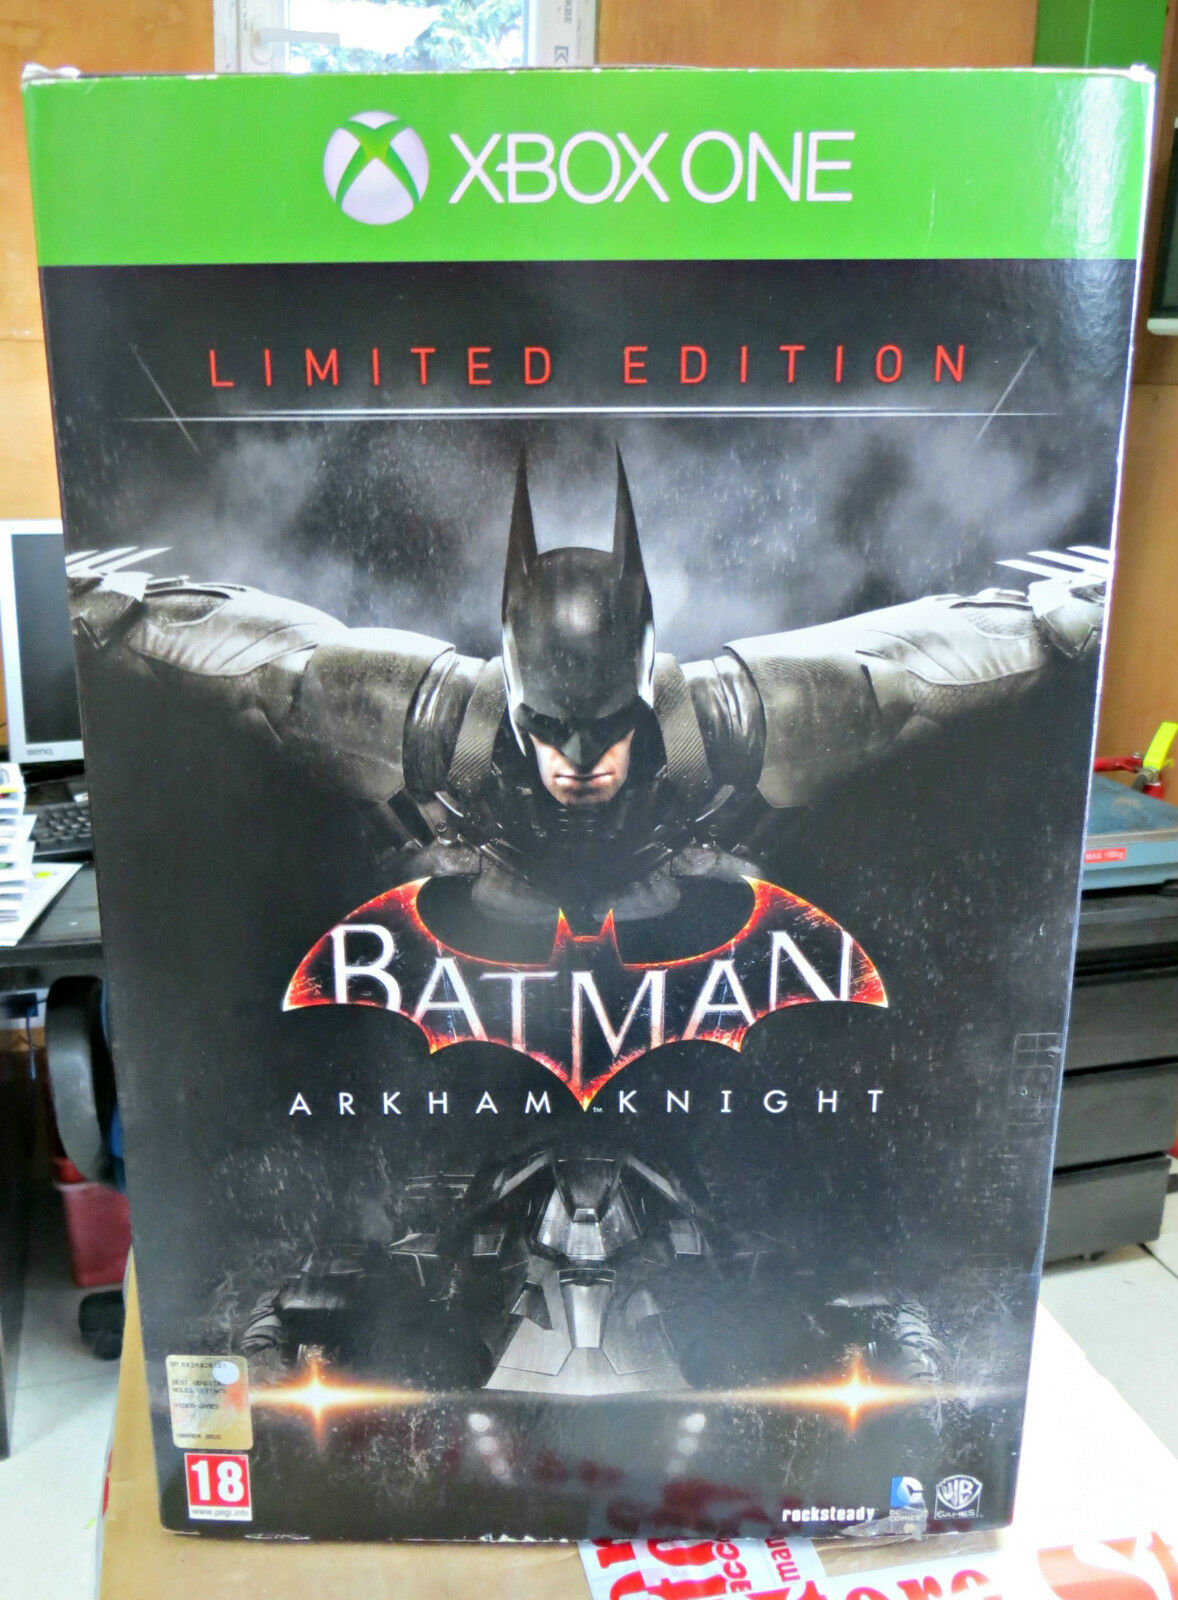 BATMAN ARKHAM KNIGHT LIMITED EDITION XBOX SEALED ONE NUOVO ITALIAN SEALED XBOX NEW XONE XBOX a333a7